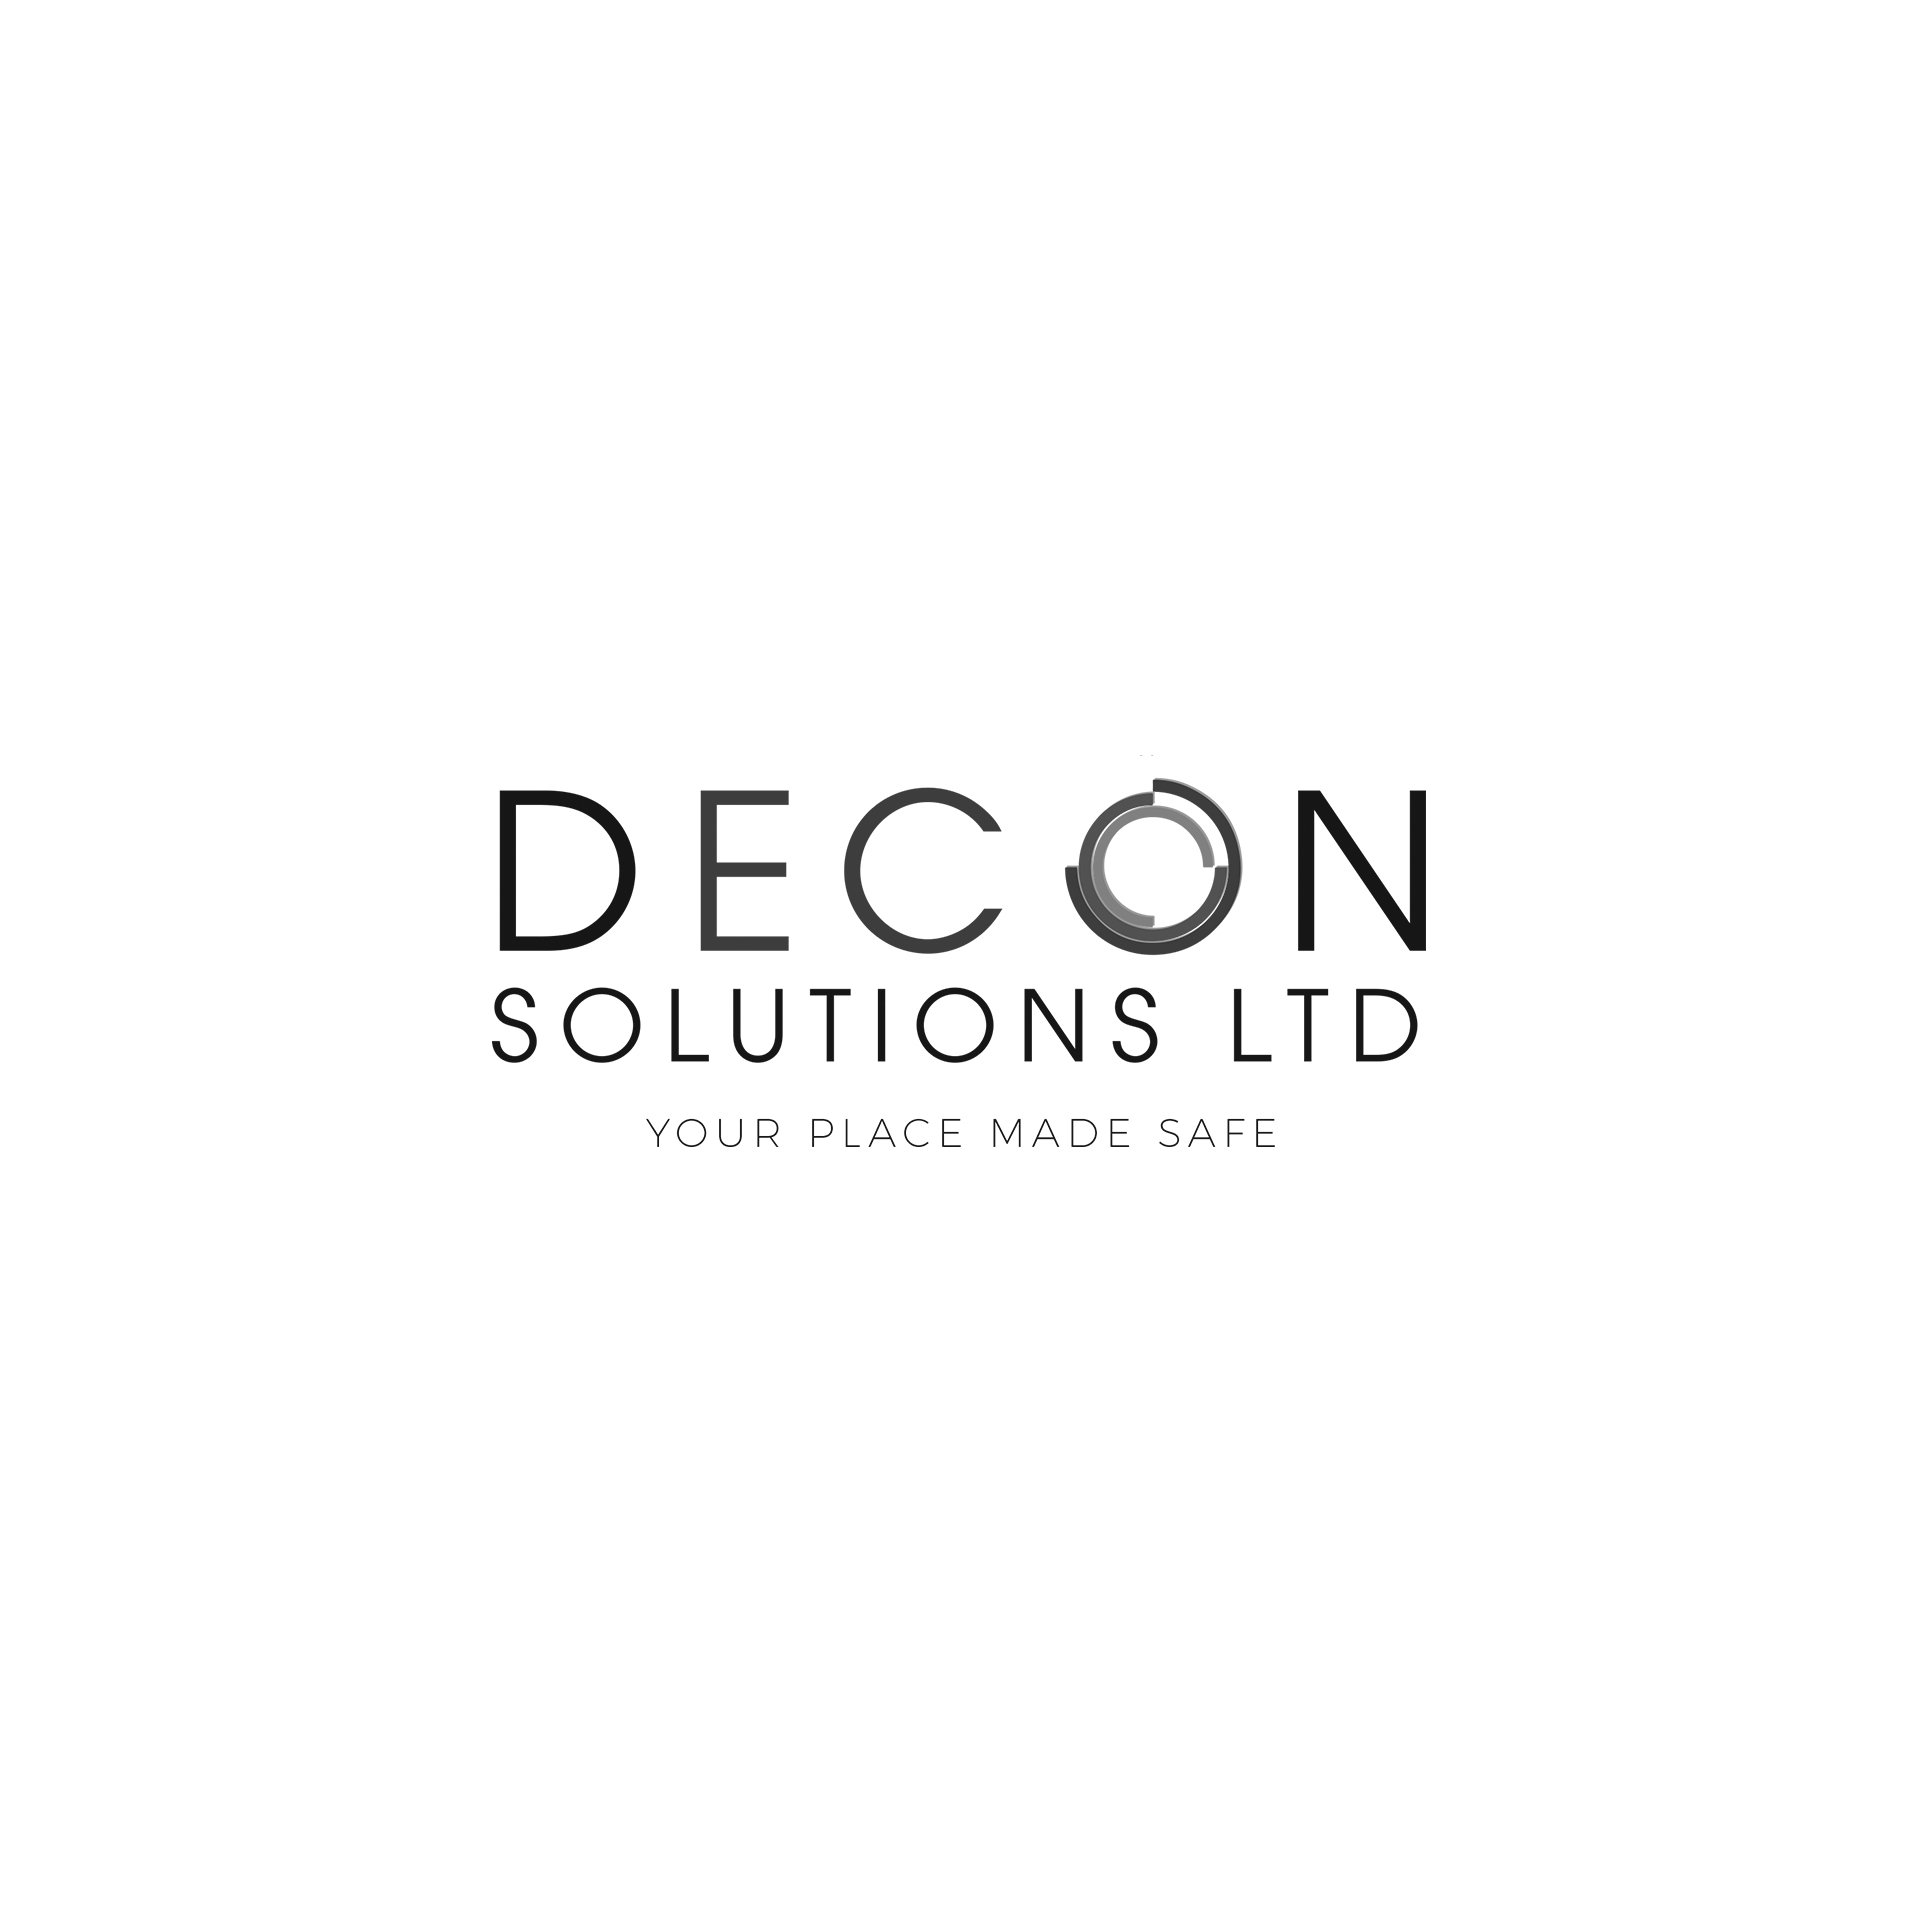 Decon Solutions Marketing Auckland